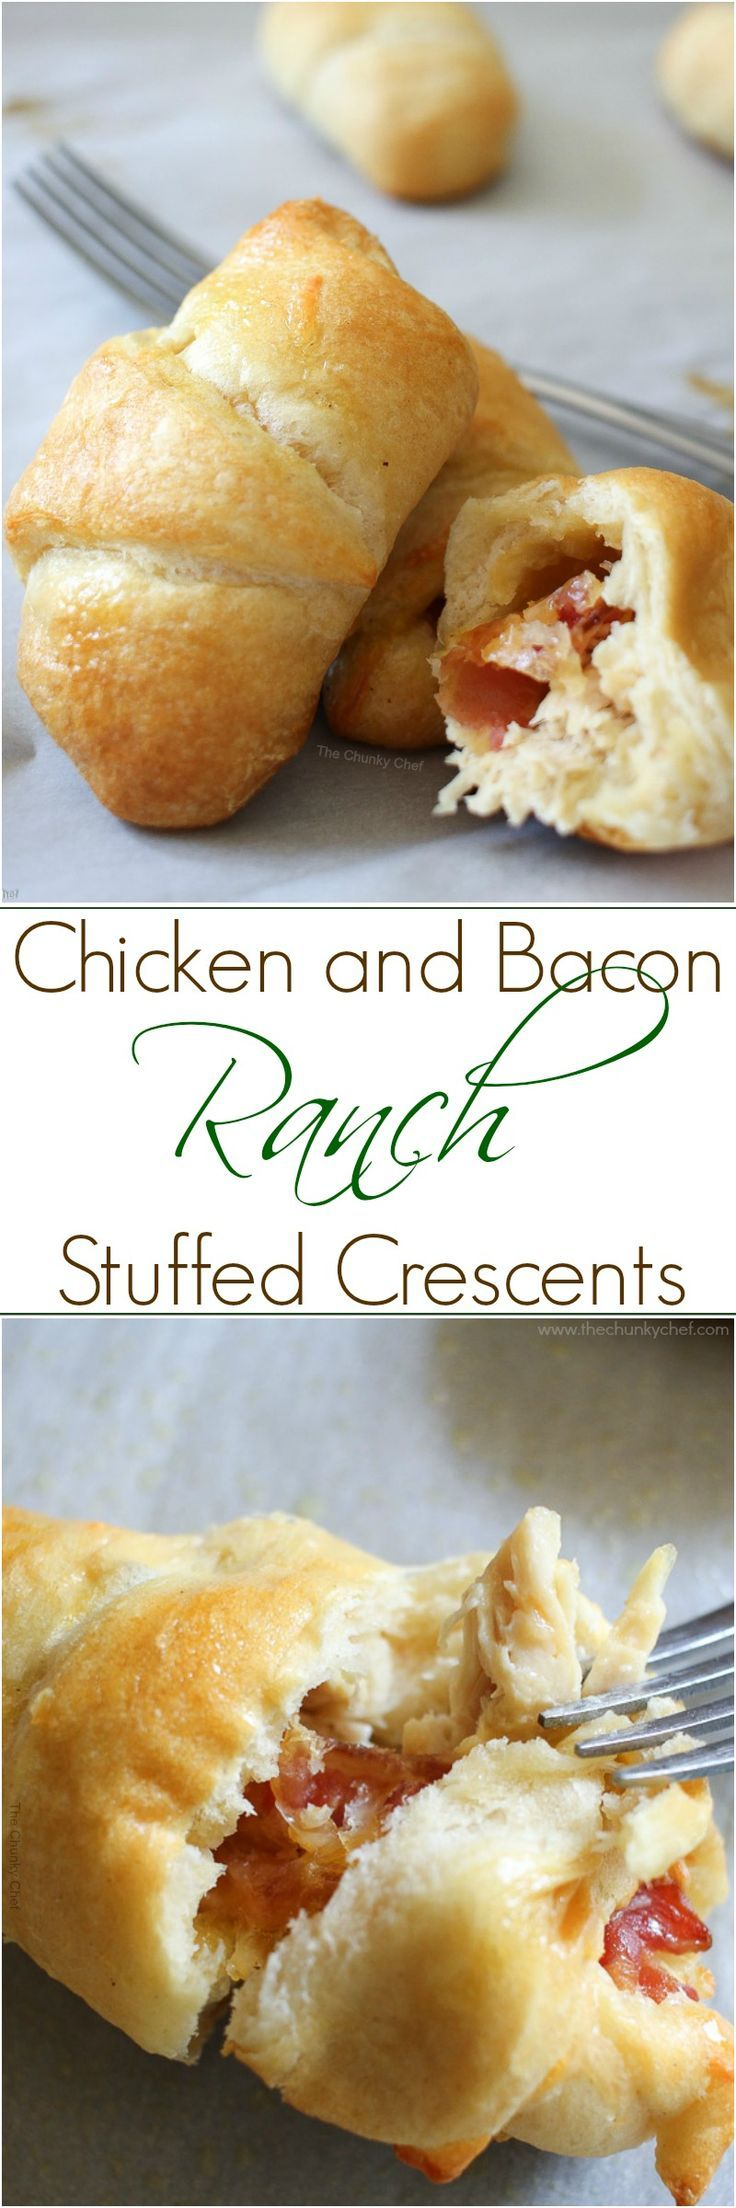 These chicken and bacon ranch stuffed crescent rolls are flaky, buttery and full of flavor!